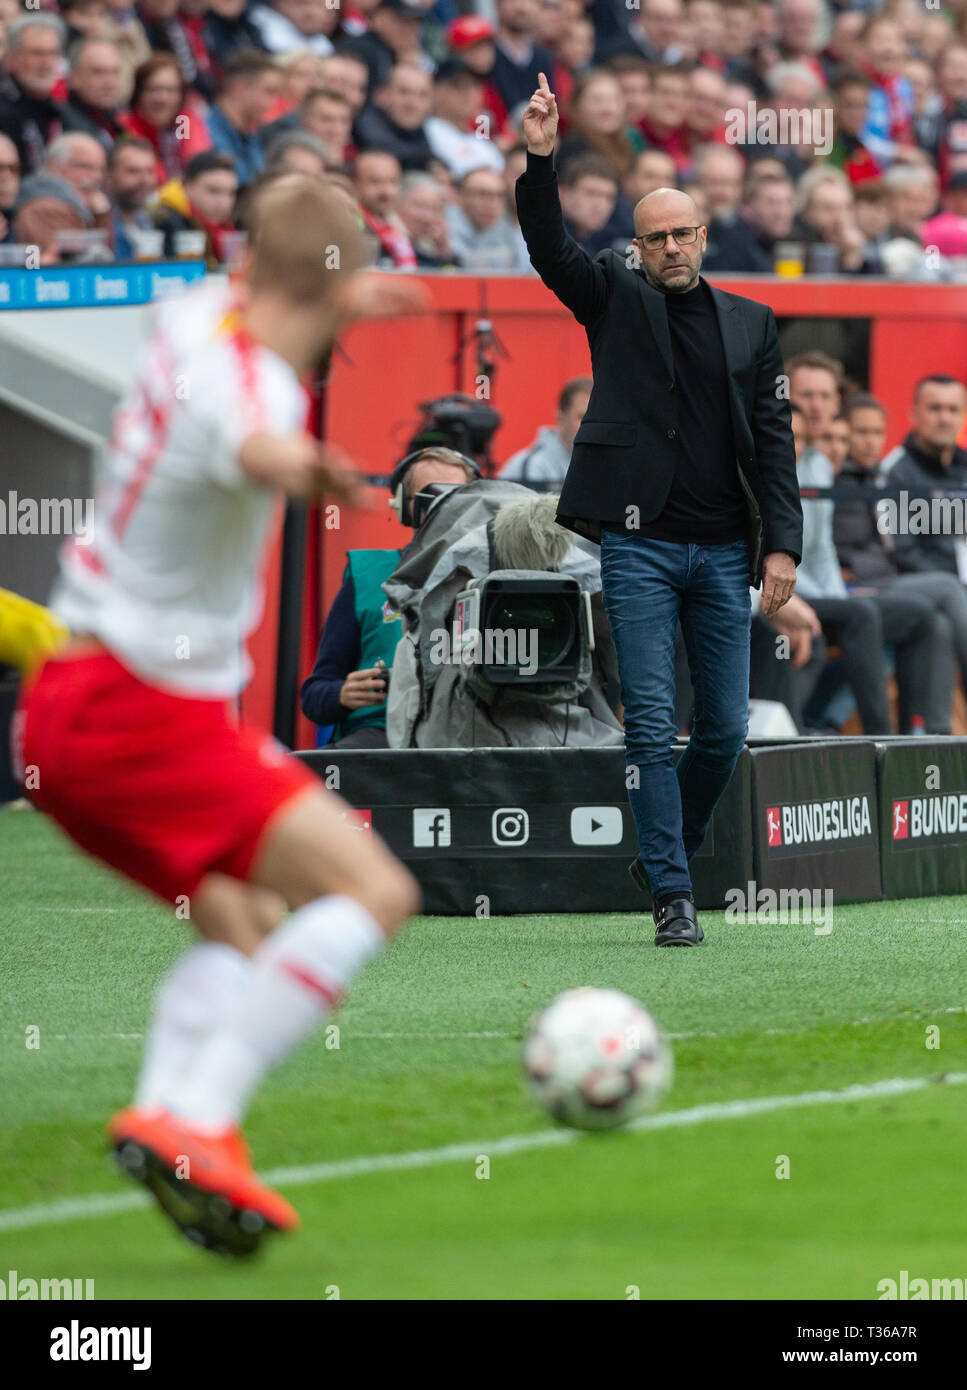 Leverkusen, Germany, April 6 2019, Bundesliga, Bayer 04 Leverkusen vs RB Leipzig: Manager Peter Bosz (B04) gestures.                  Credit: Juergen  - Stock Image